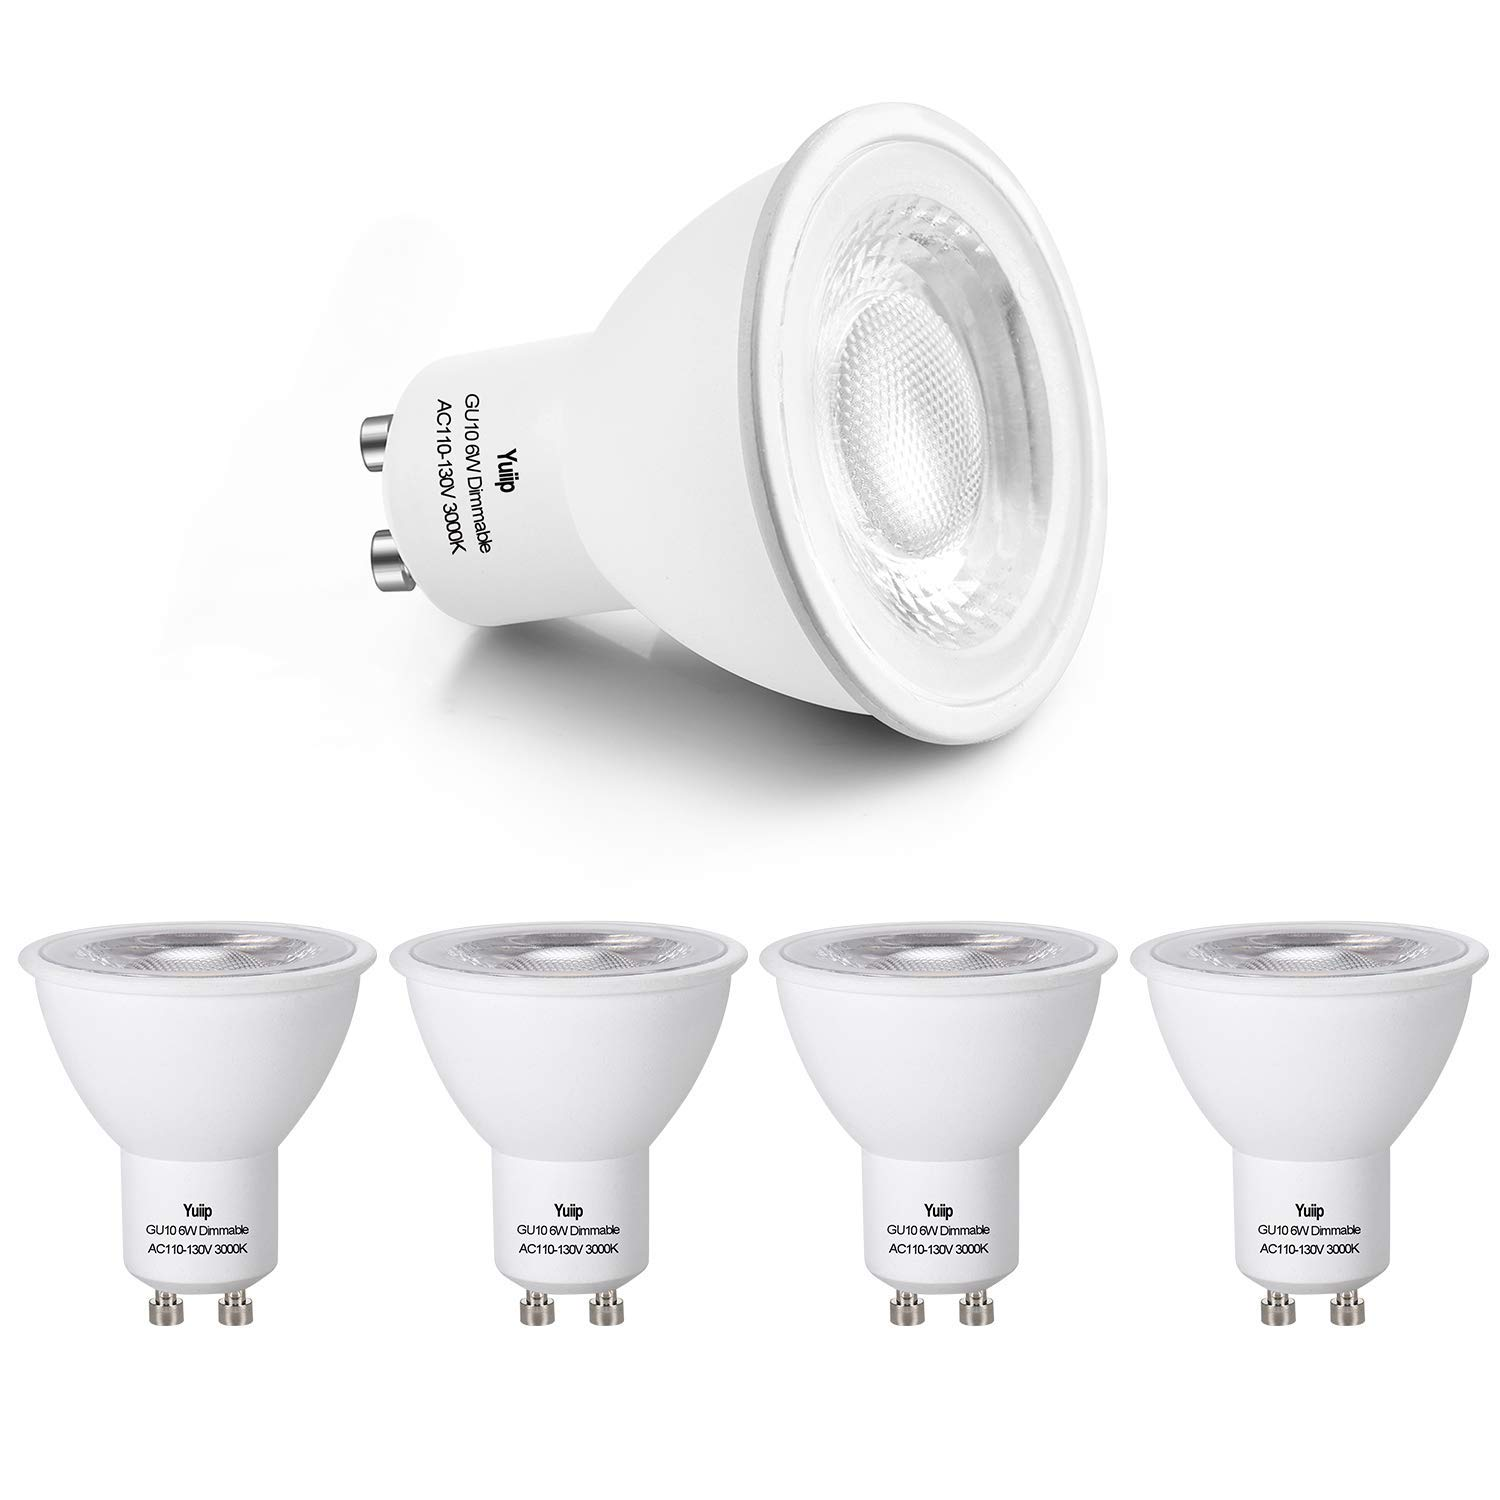 GU10 LED Bulb Dimmable GU10 Base Light Bulb Warm White 3000K LED GU10 Spotlight 6W (60W Halogen Lamp Equivalent) AC110-130V COB GU10 LED 38 Degree Beam Angle UL Listed 5 Pack Yuiip